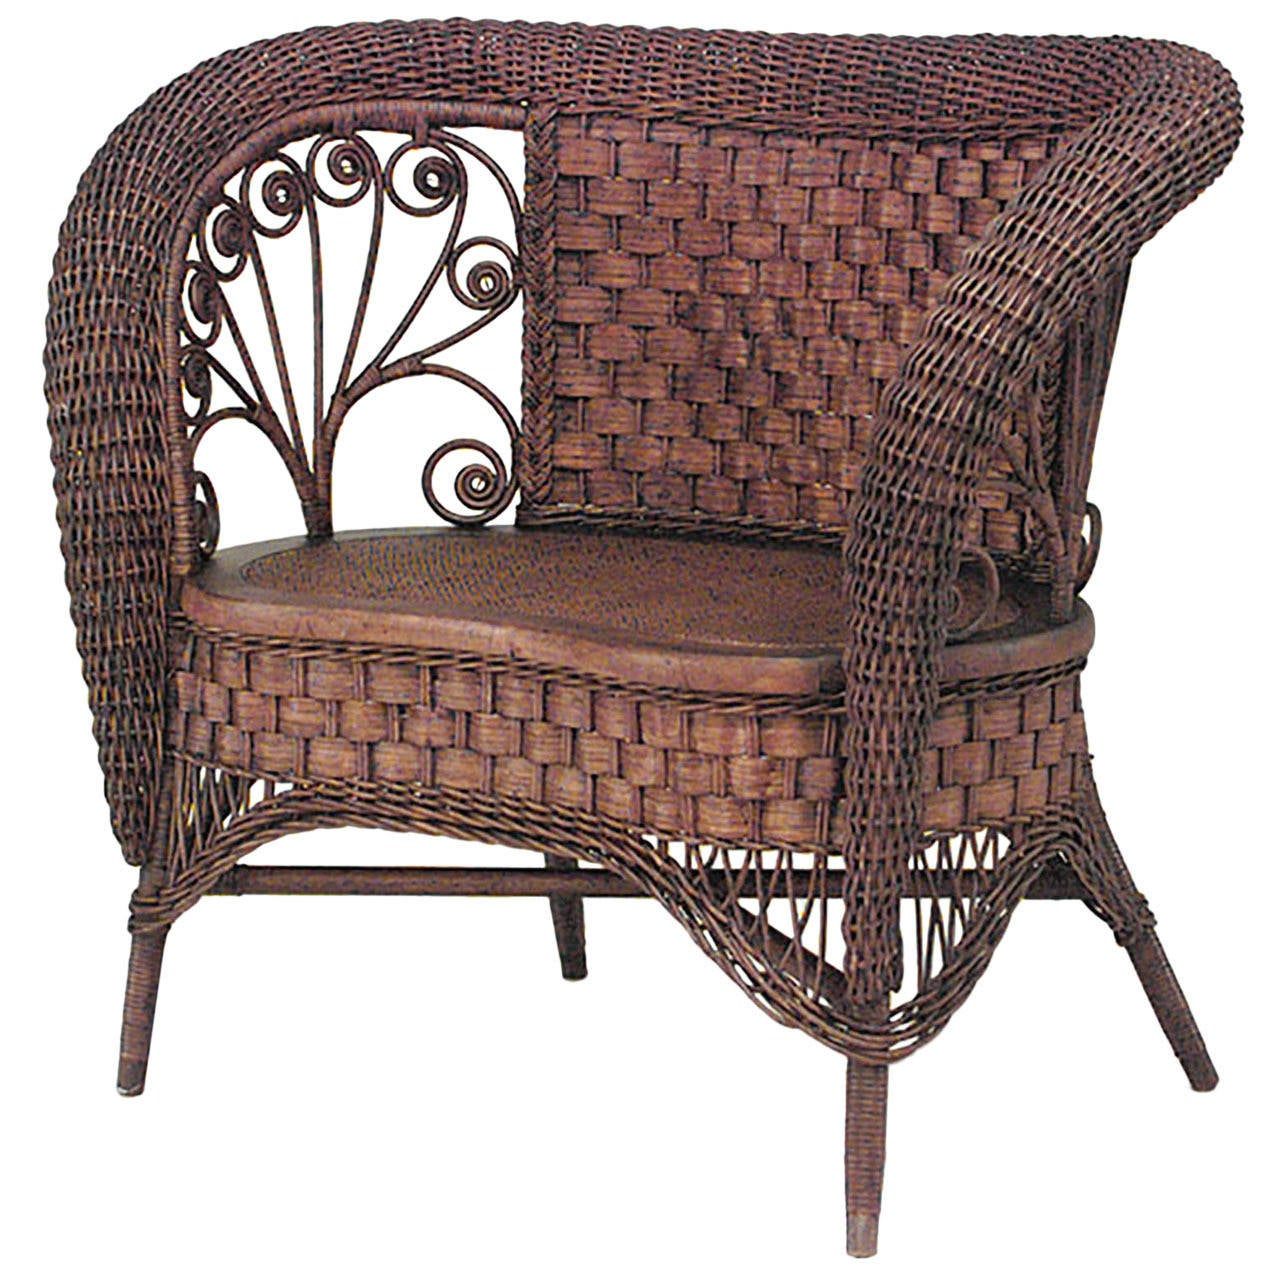 19th c. American Small Wicker Loveseat, Attributed to Heywood-Wakefield